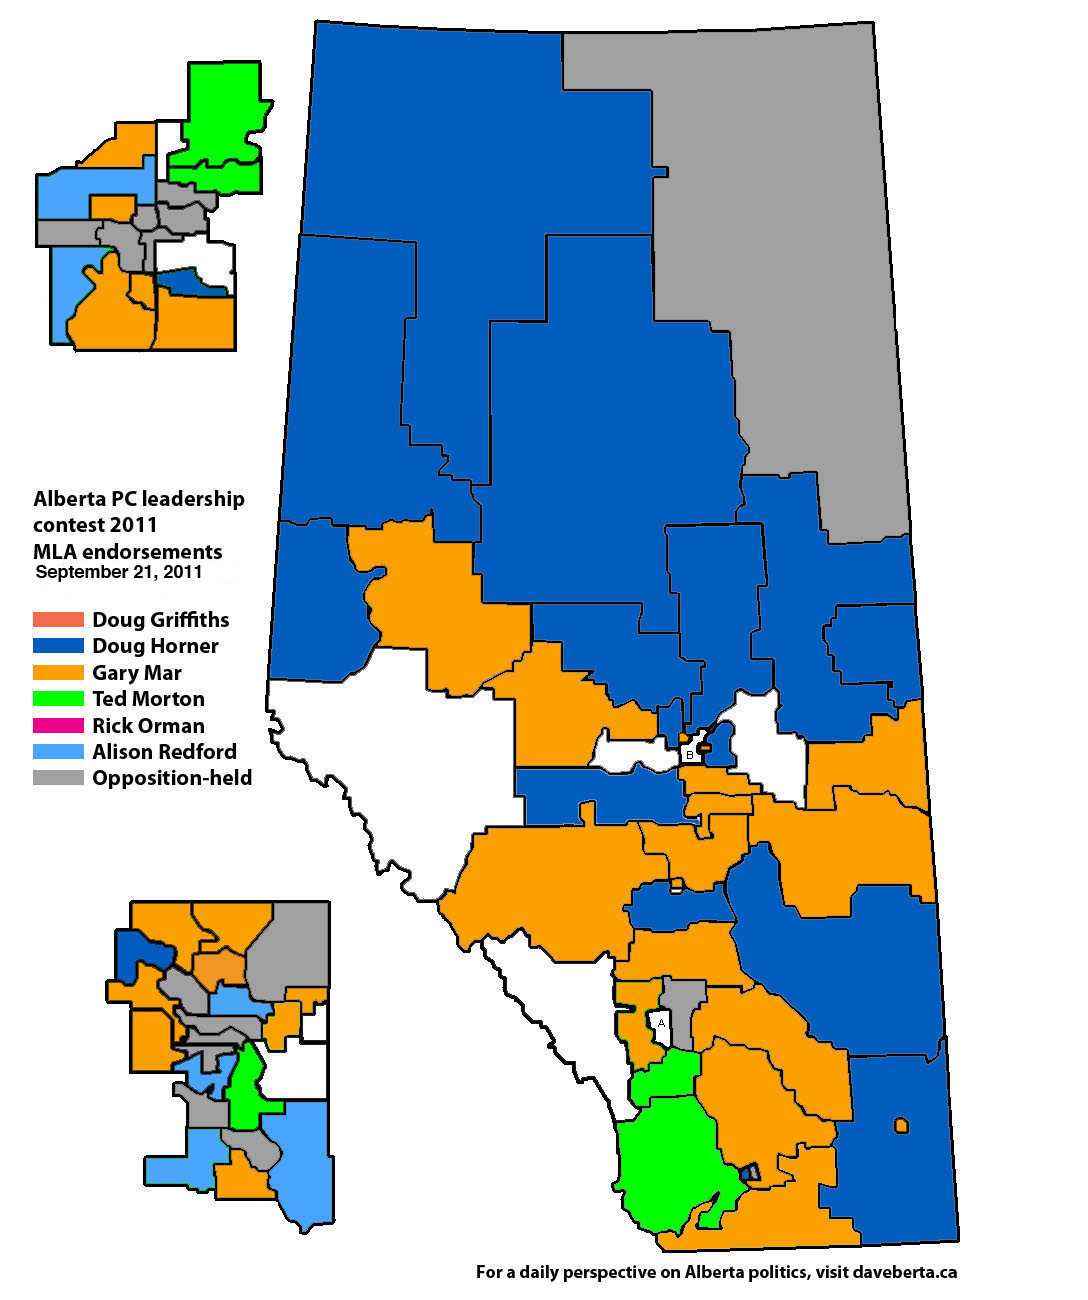 Map-of-MLA-support-in-the-2011-Alberta-PC-leadership-contest-September-21-2011